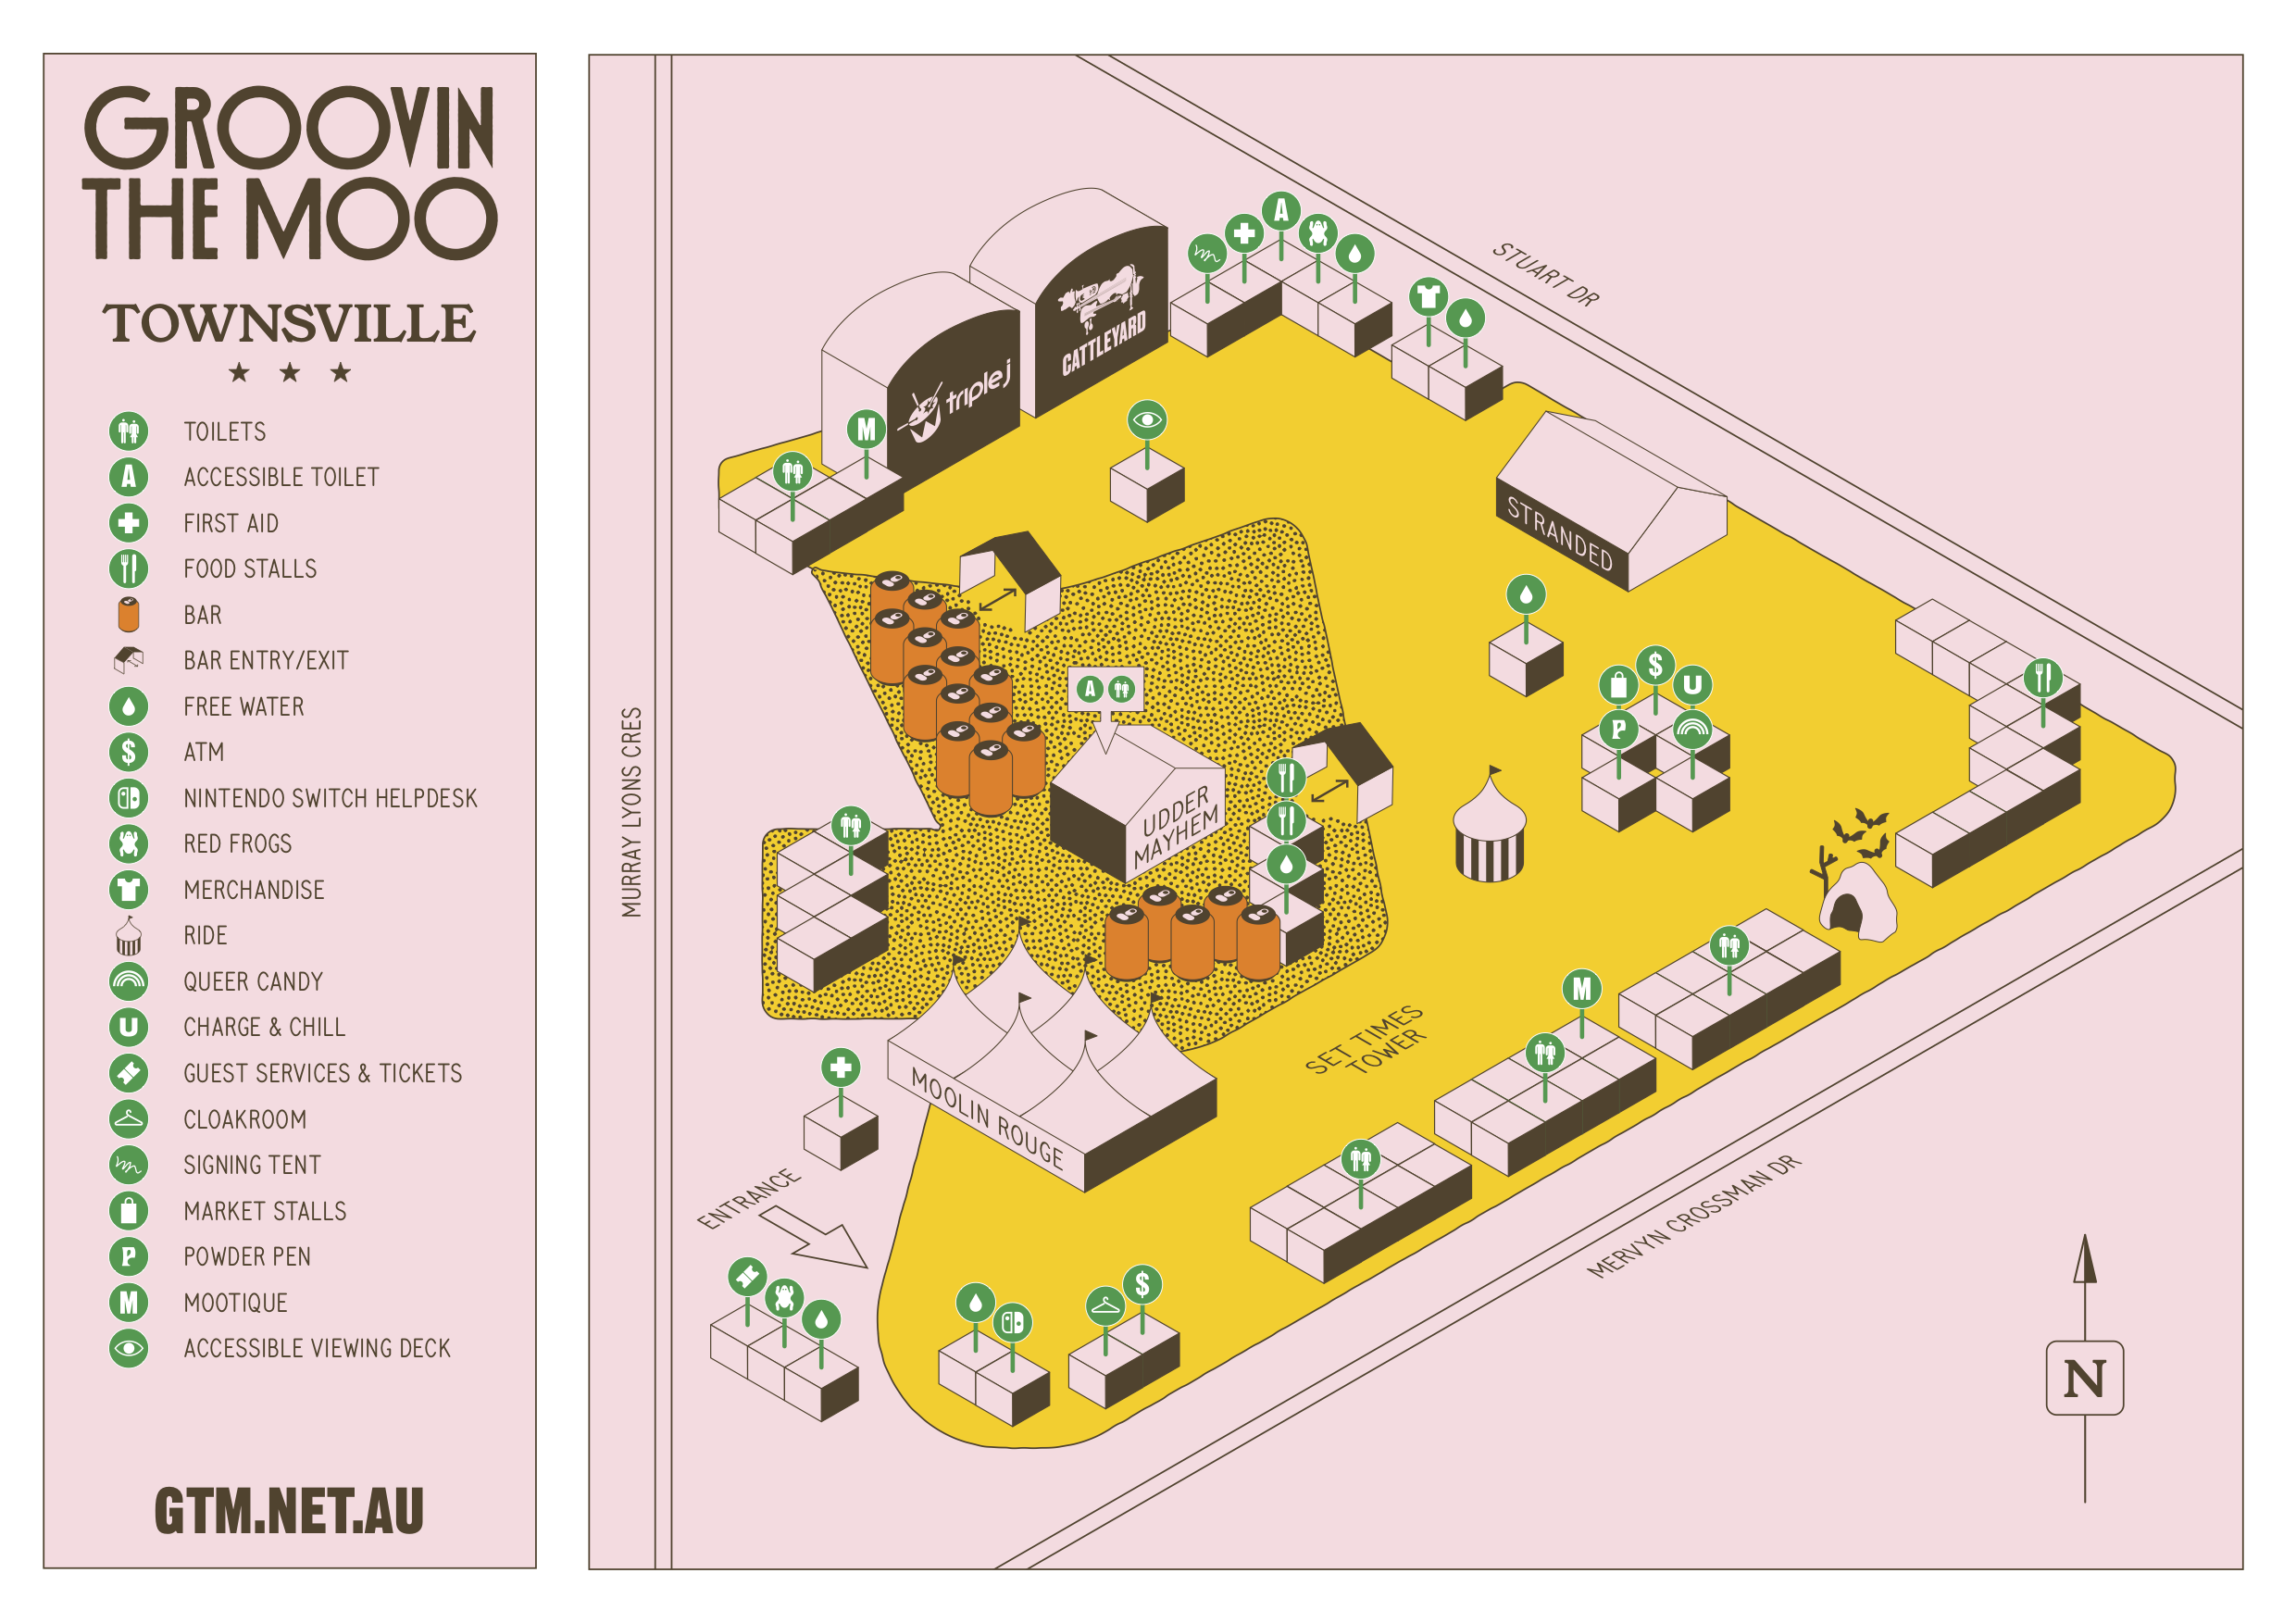 Townsville - Groovin the Moo